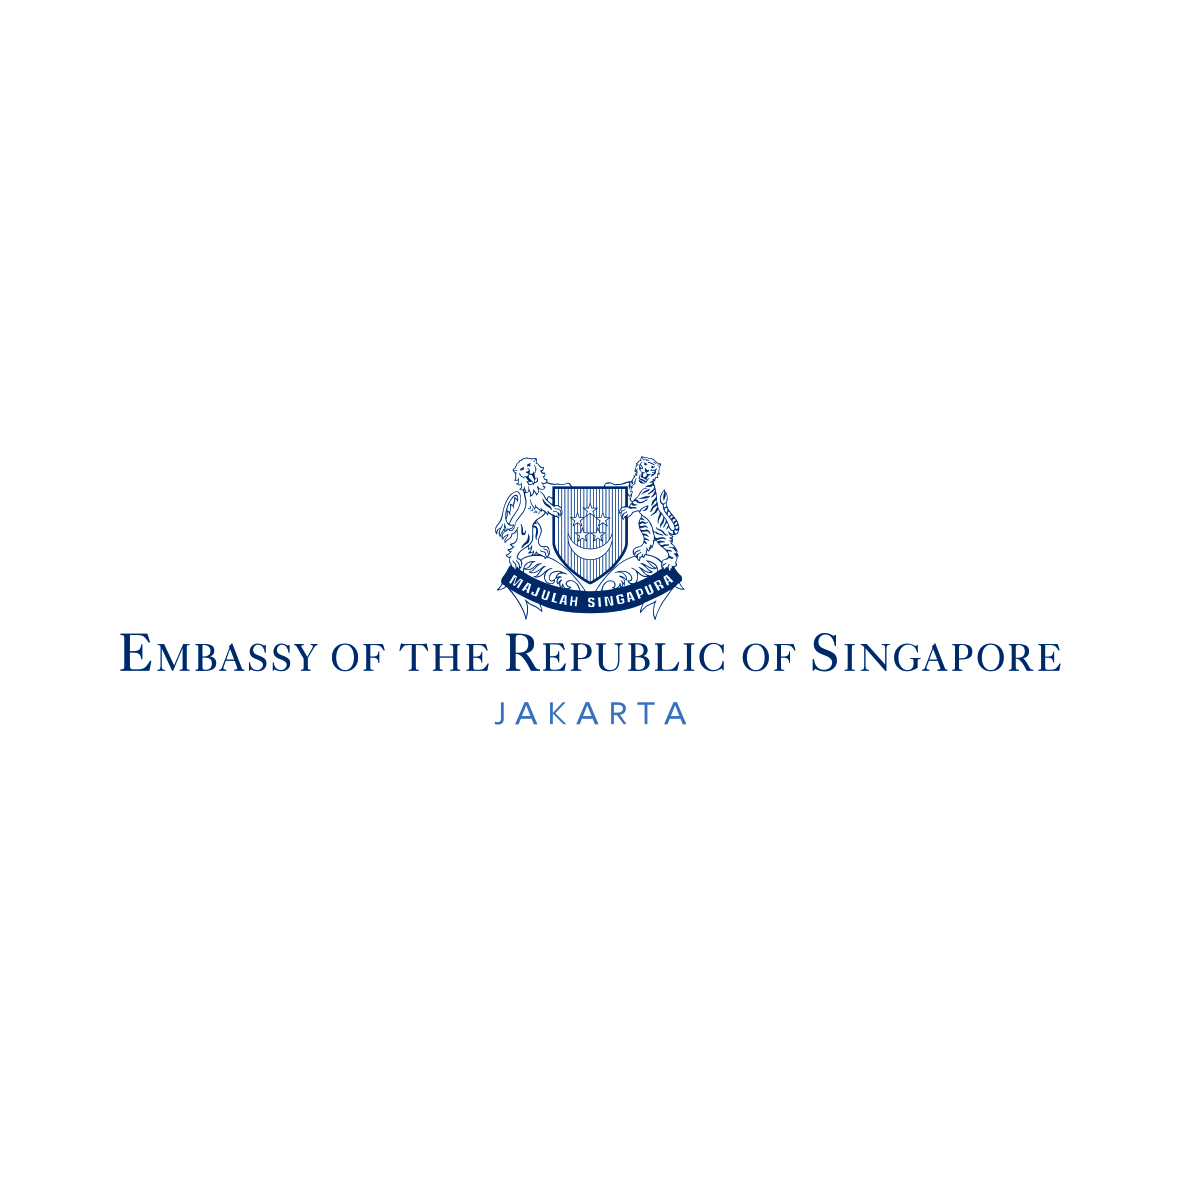 Ministry of Foreign Affairs Singapore - Embassy of the